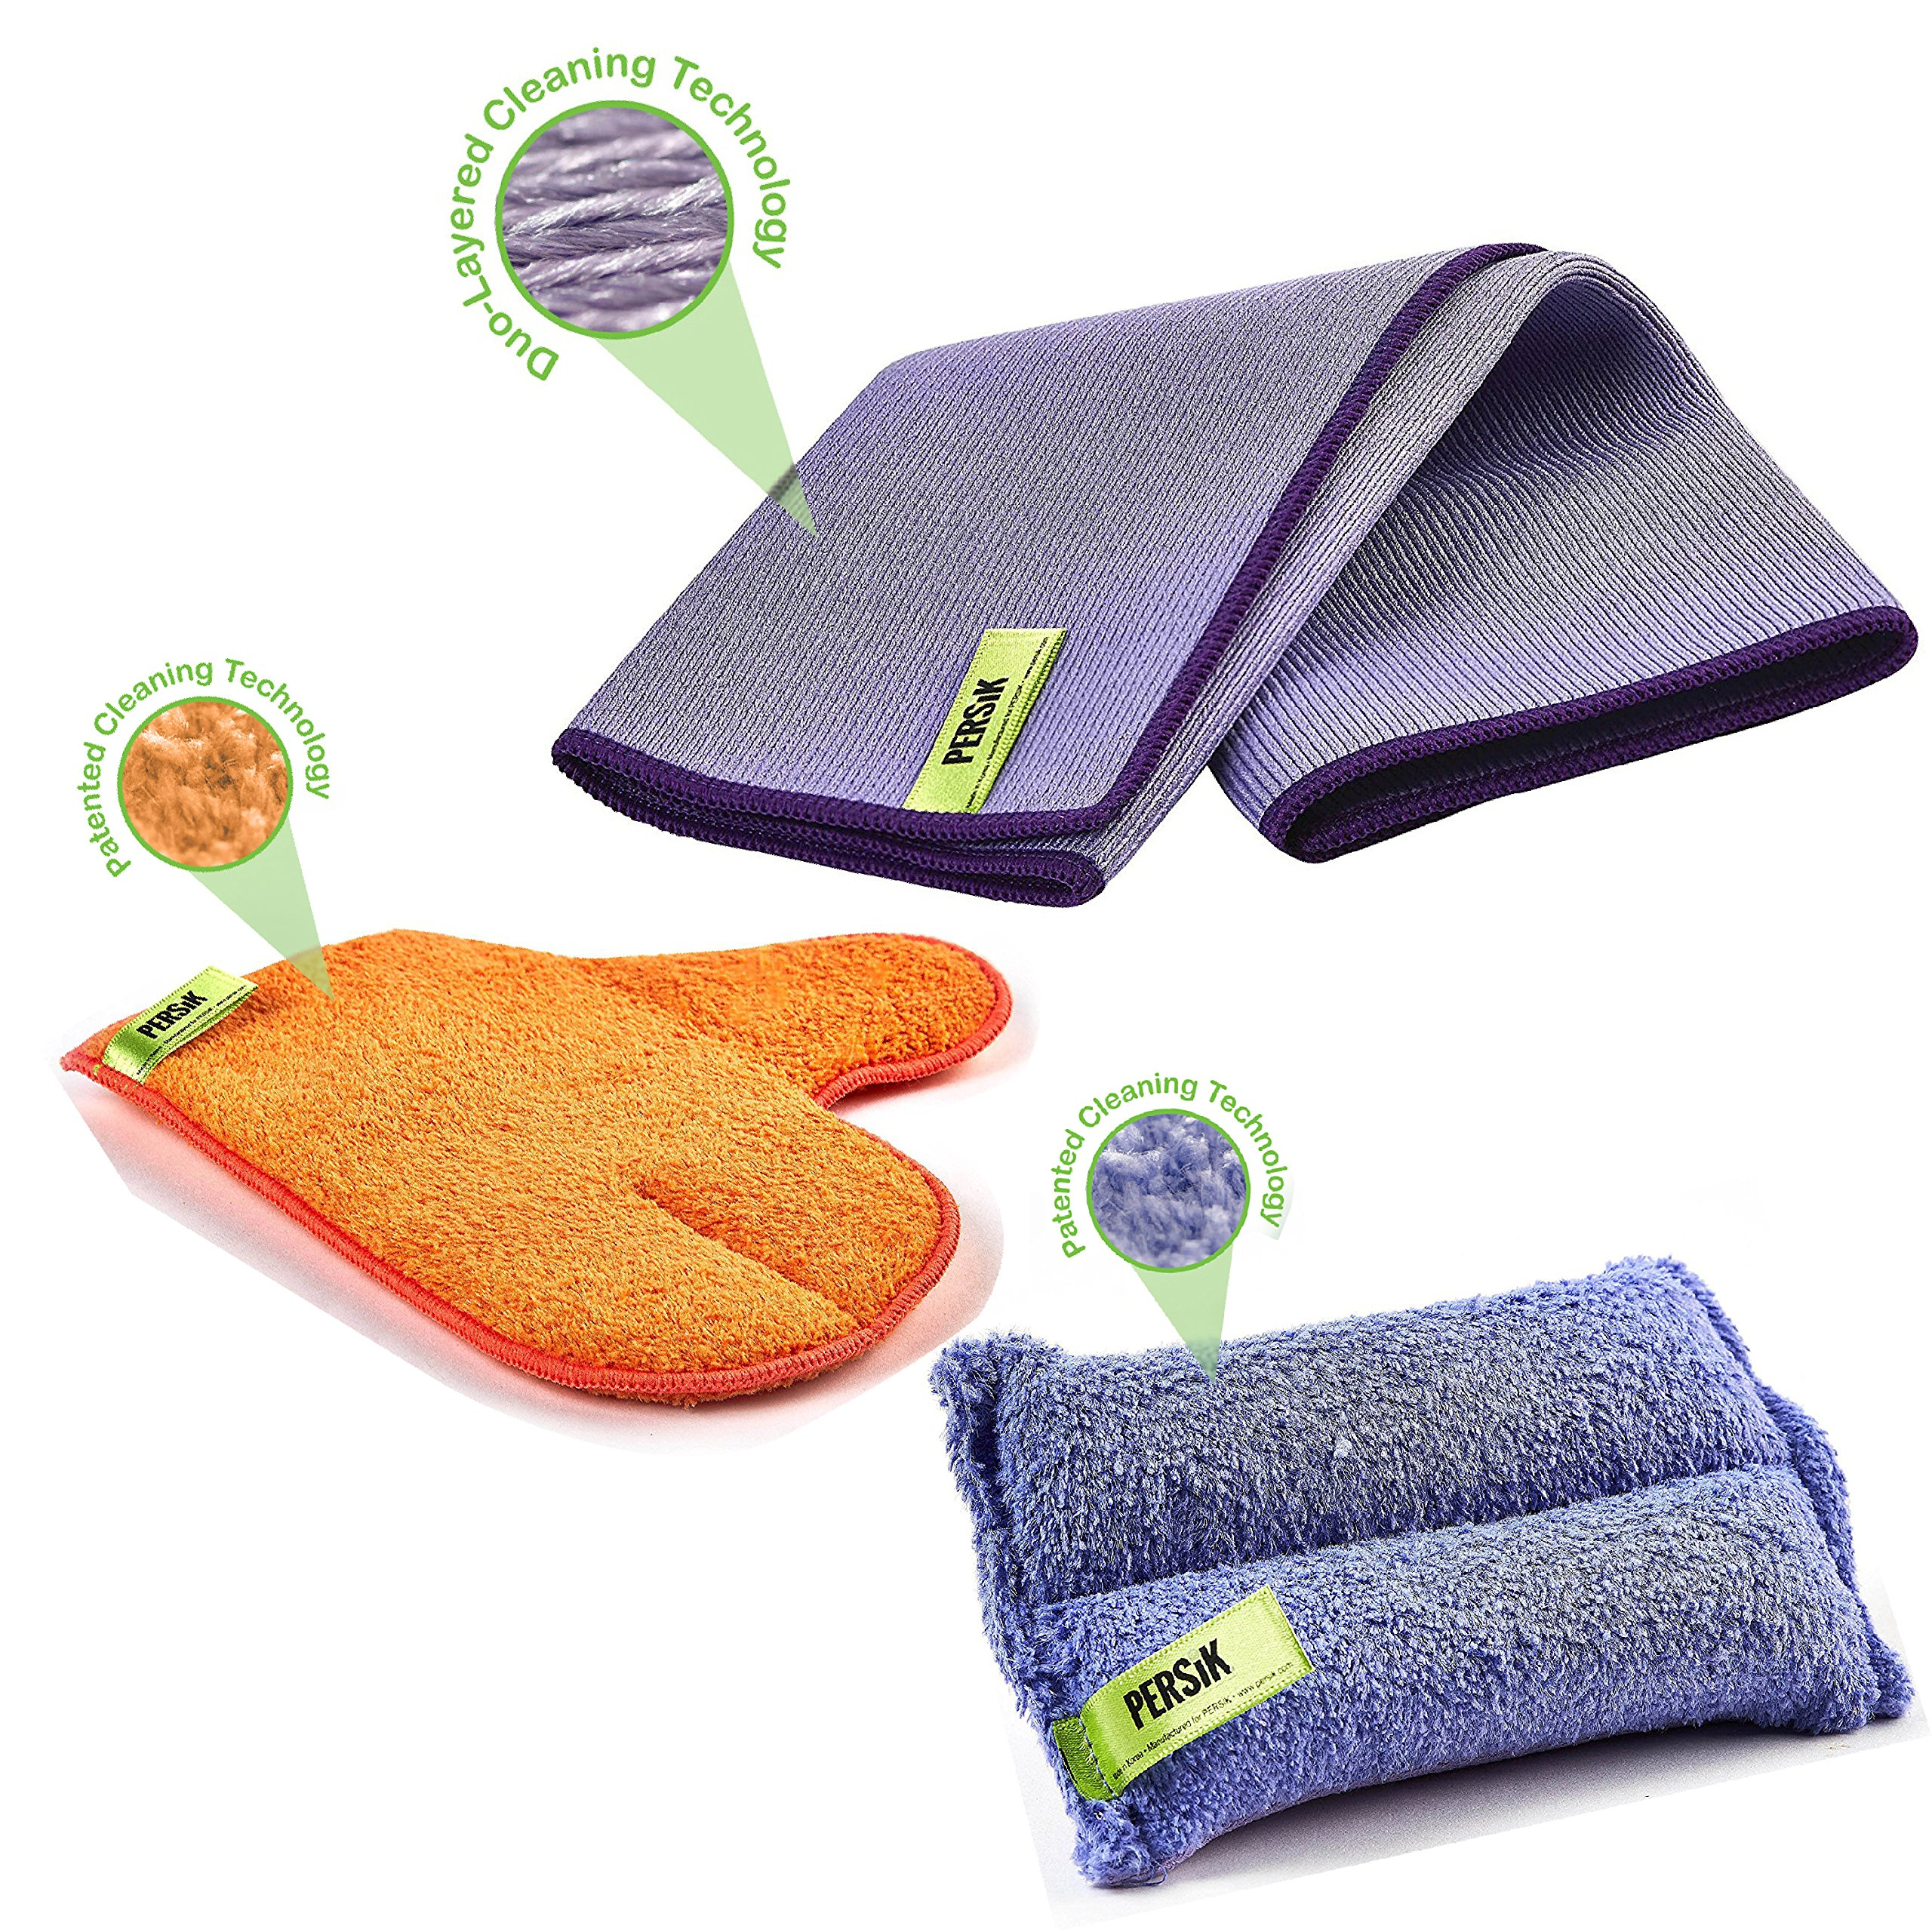 Nano-Knockout ULTRA-MICROFIBER Cleaning Cloth - JUST ADD WATER No Detergents Needed - Includes Window and GLASS Cleaning TOWEL Streak Free + Dusting and Cleaning GLOVE / MITT + Kitchen Cleaning SPONGE